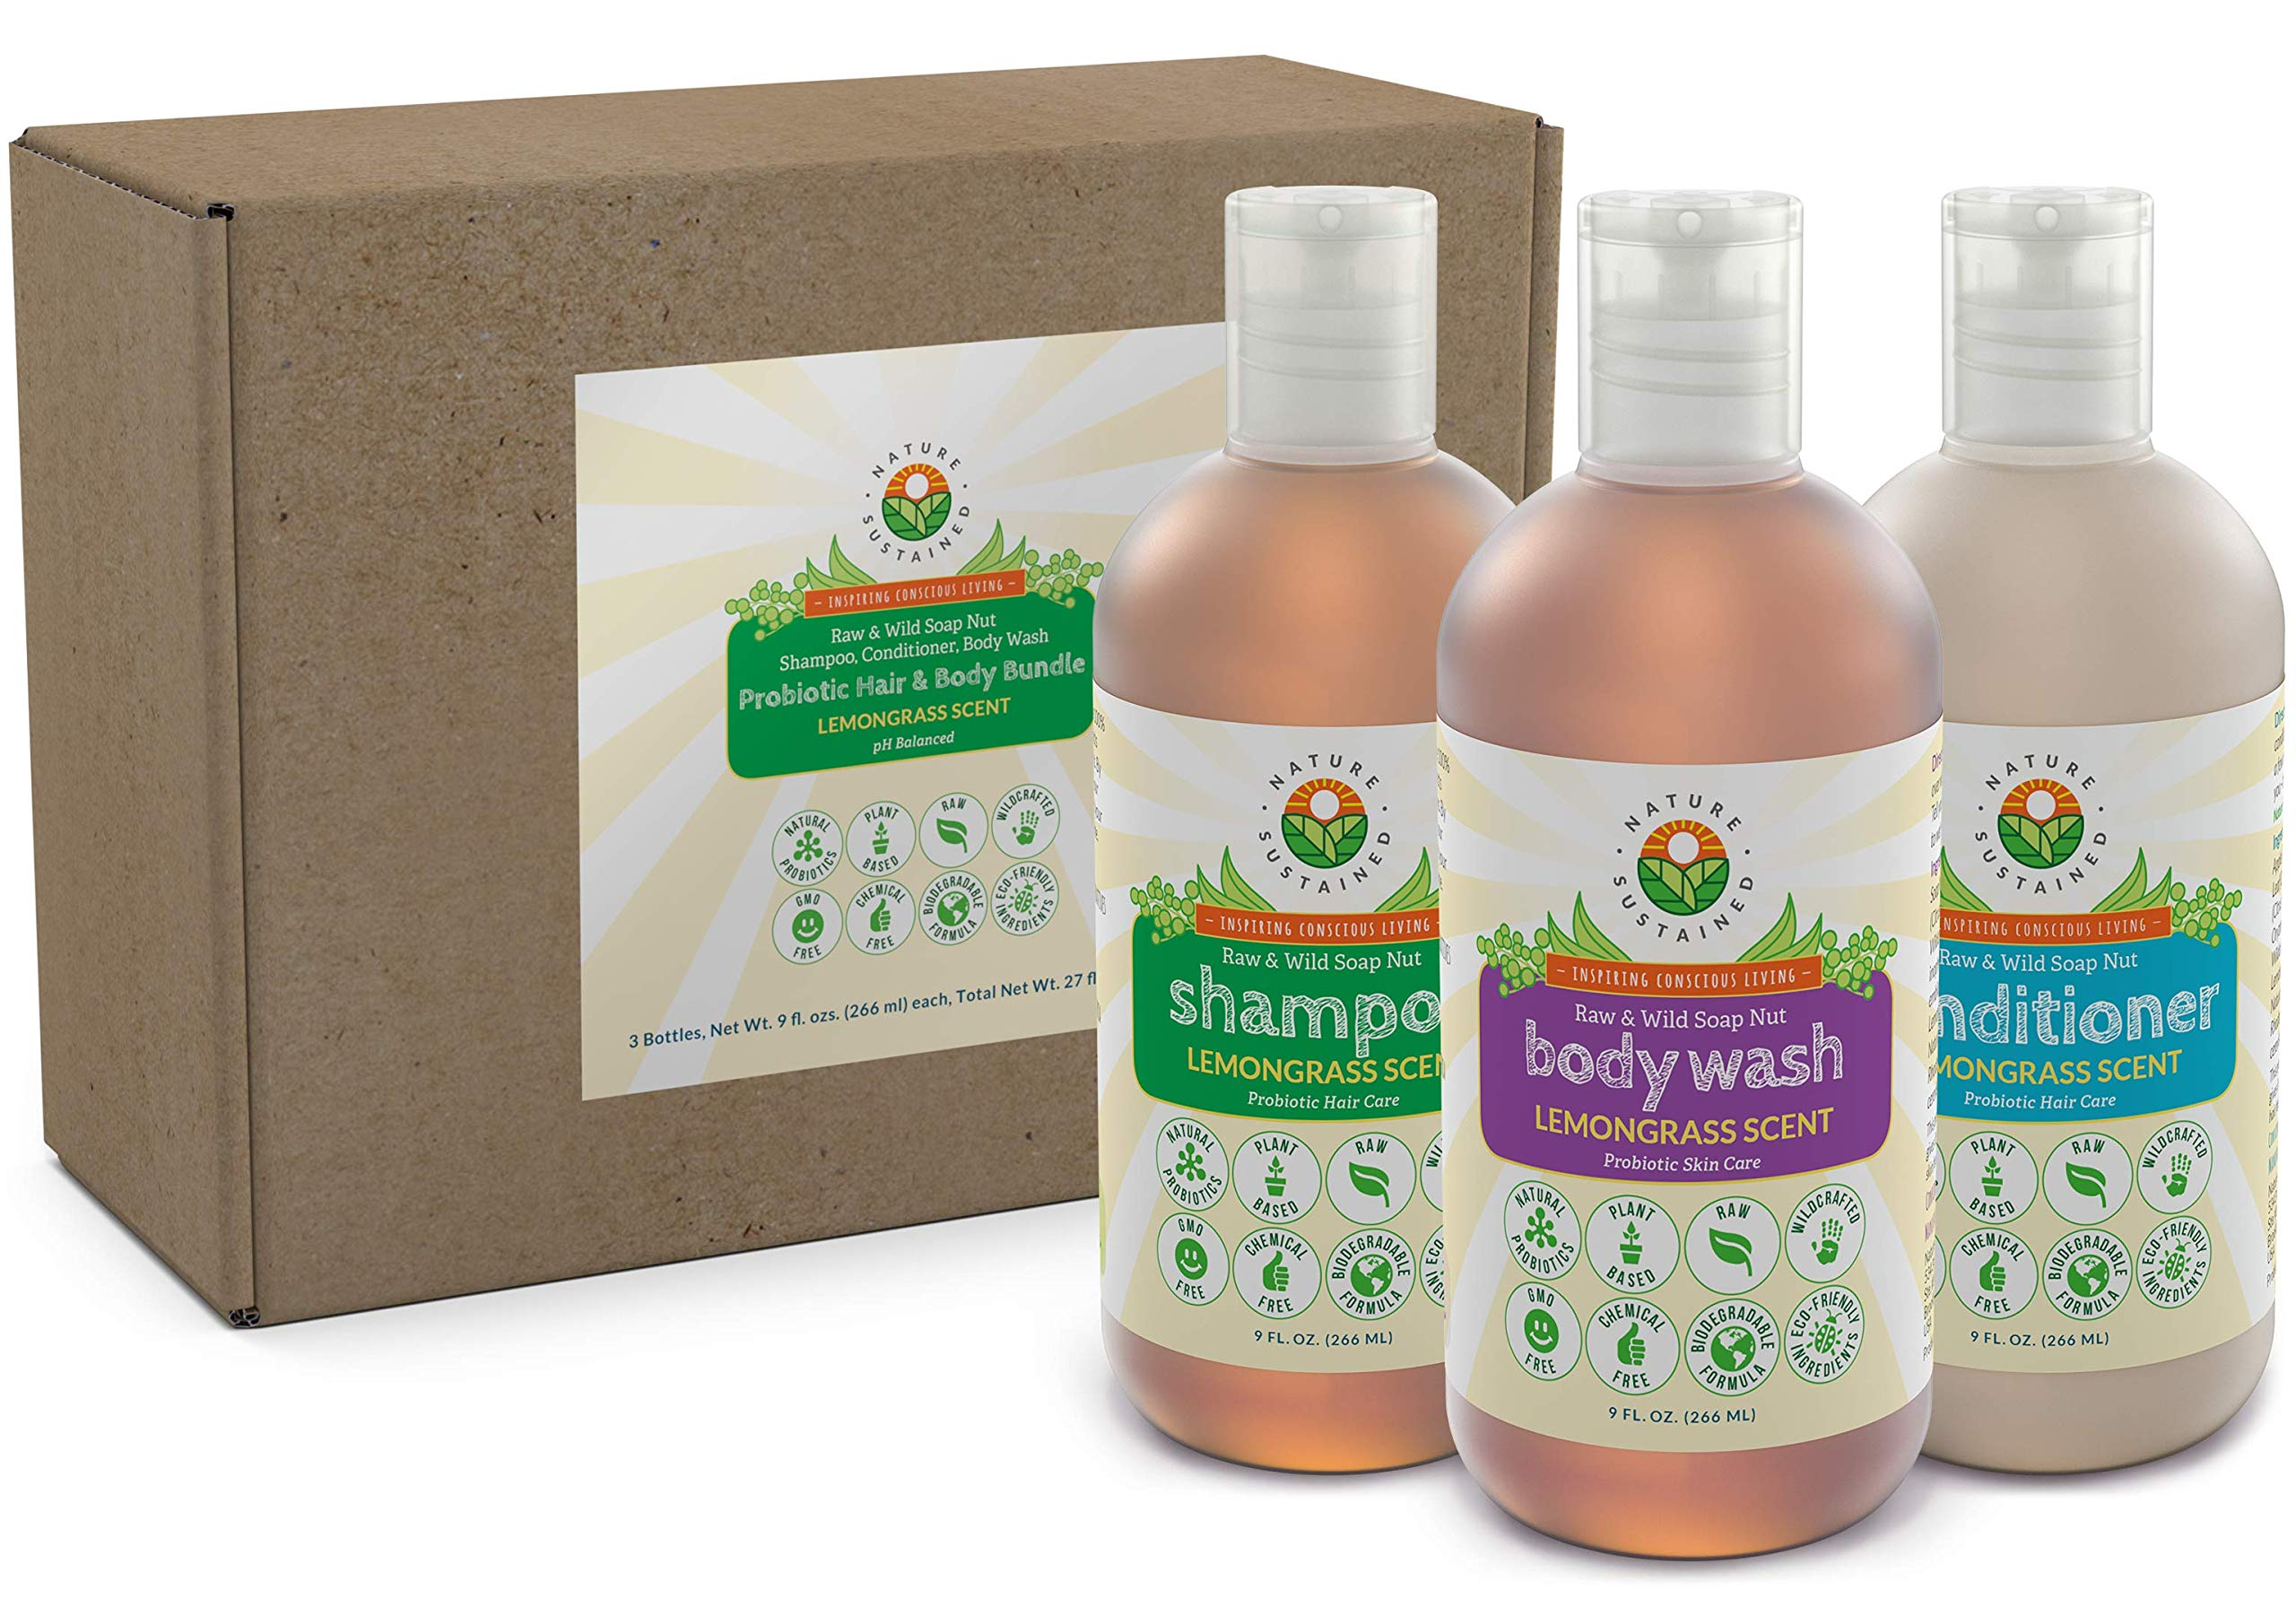 Soapberry Organic Shampoo, Body Wash & Conditioner [Lemongrass] (3 Pack Gift Bundle) - Raw & Wild Probiotic Shower Set for Sensitive Skin & Dry Hair - Sulfate Free & pH Balanced (9 Oz.) by Nature Sustained